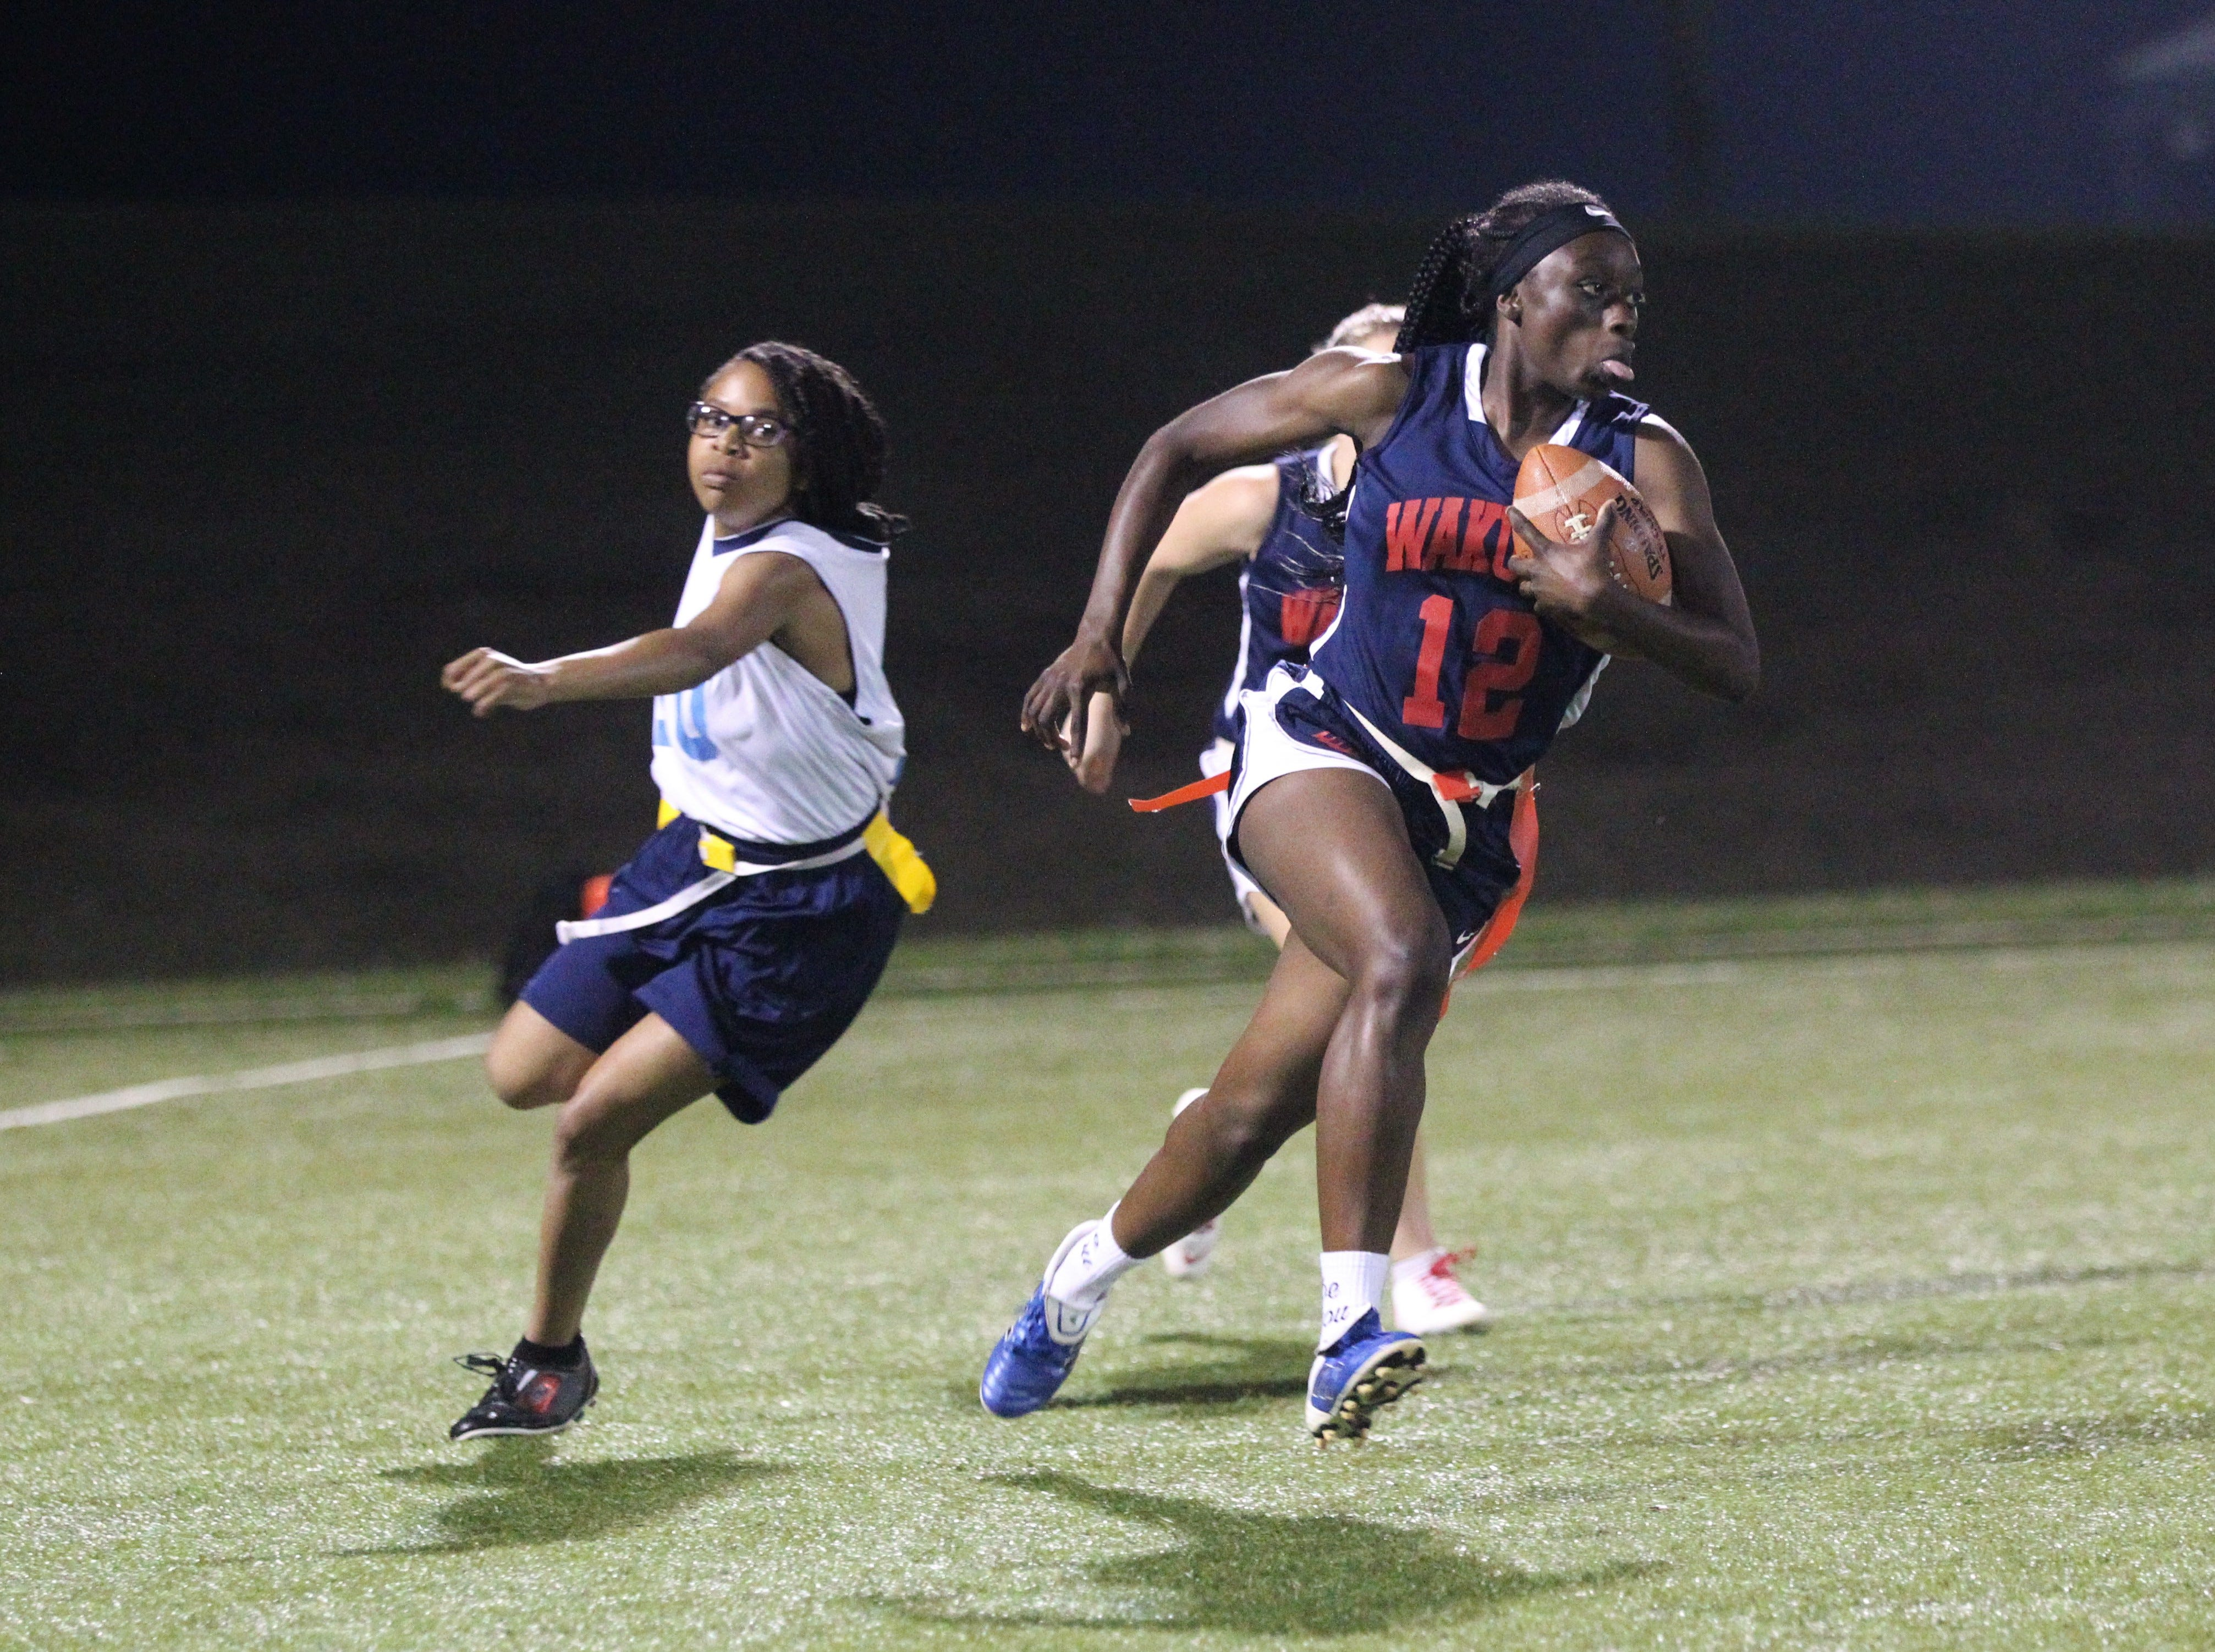 Wakulla running back Ja'daa Wilson turns the corner on a big gain as the War Eagles and Gadsden County play during the 2019 flag football preseason classic at Florida A&M's intramural turf fields on Feb. 27, 2019.